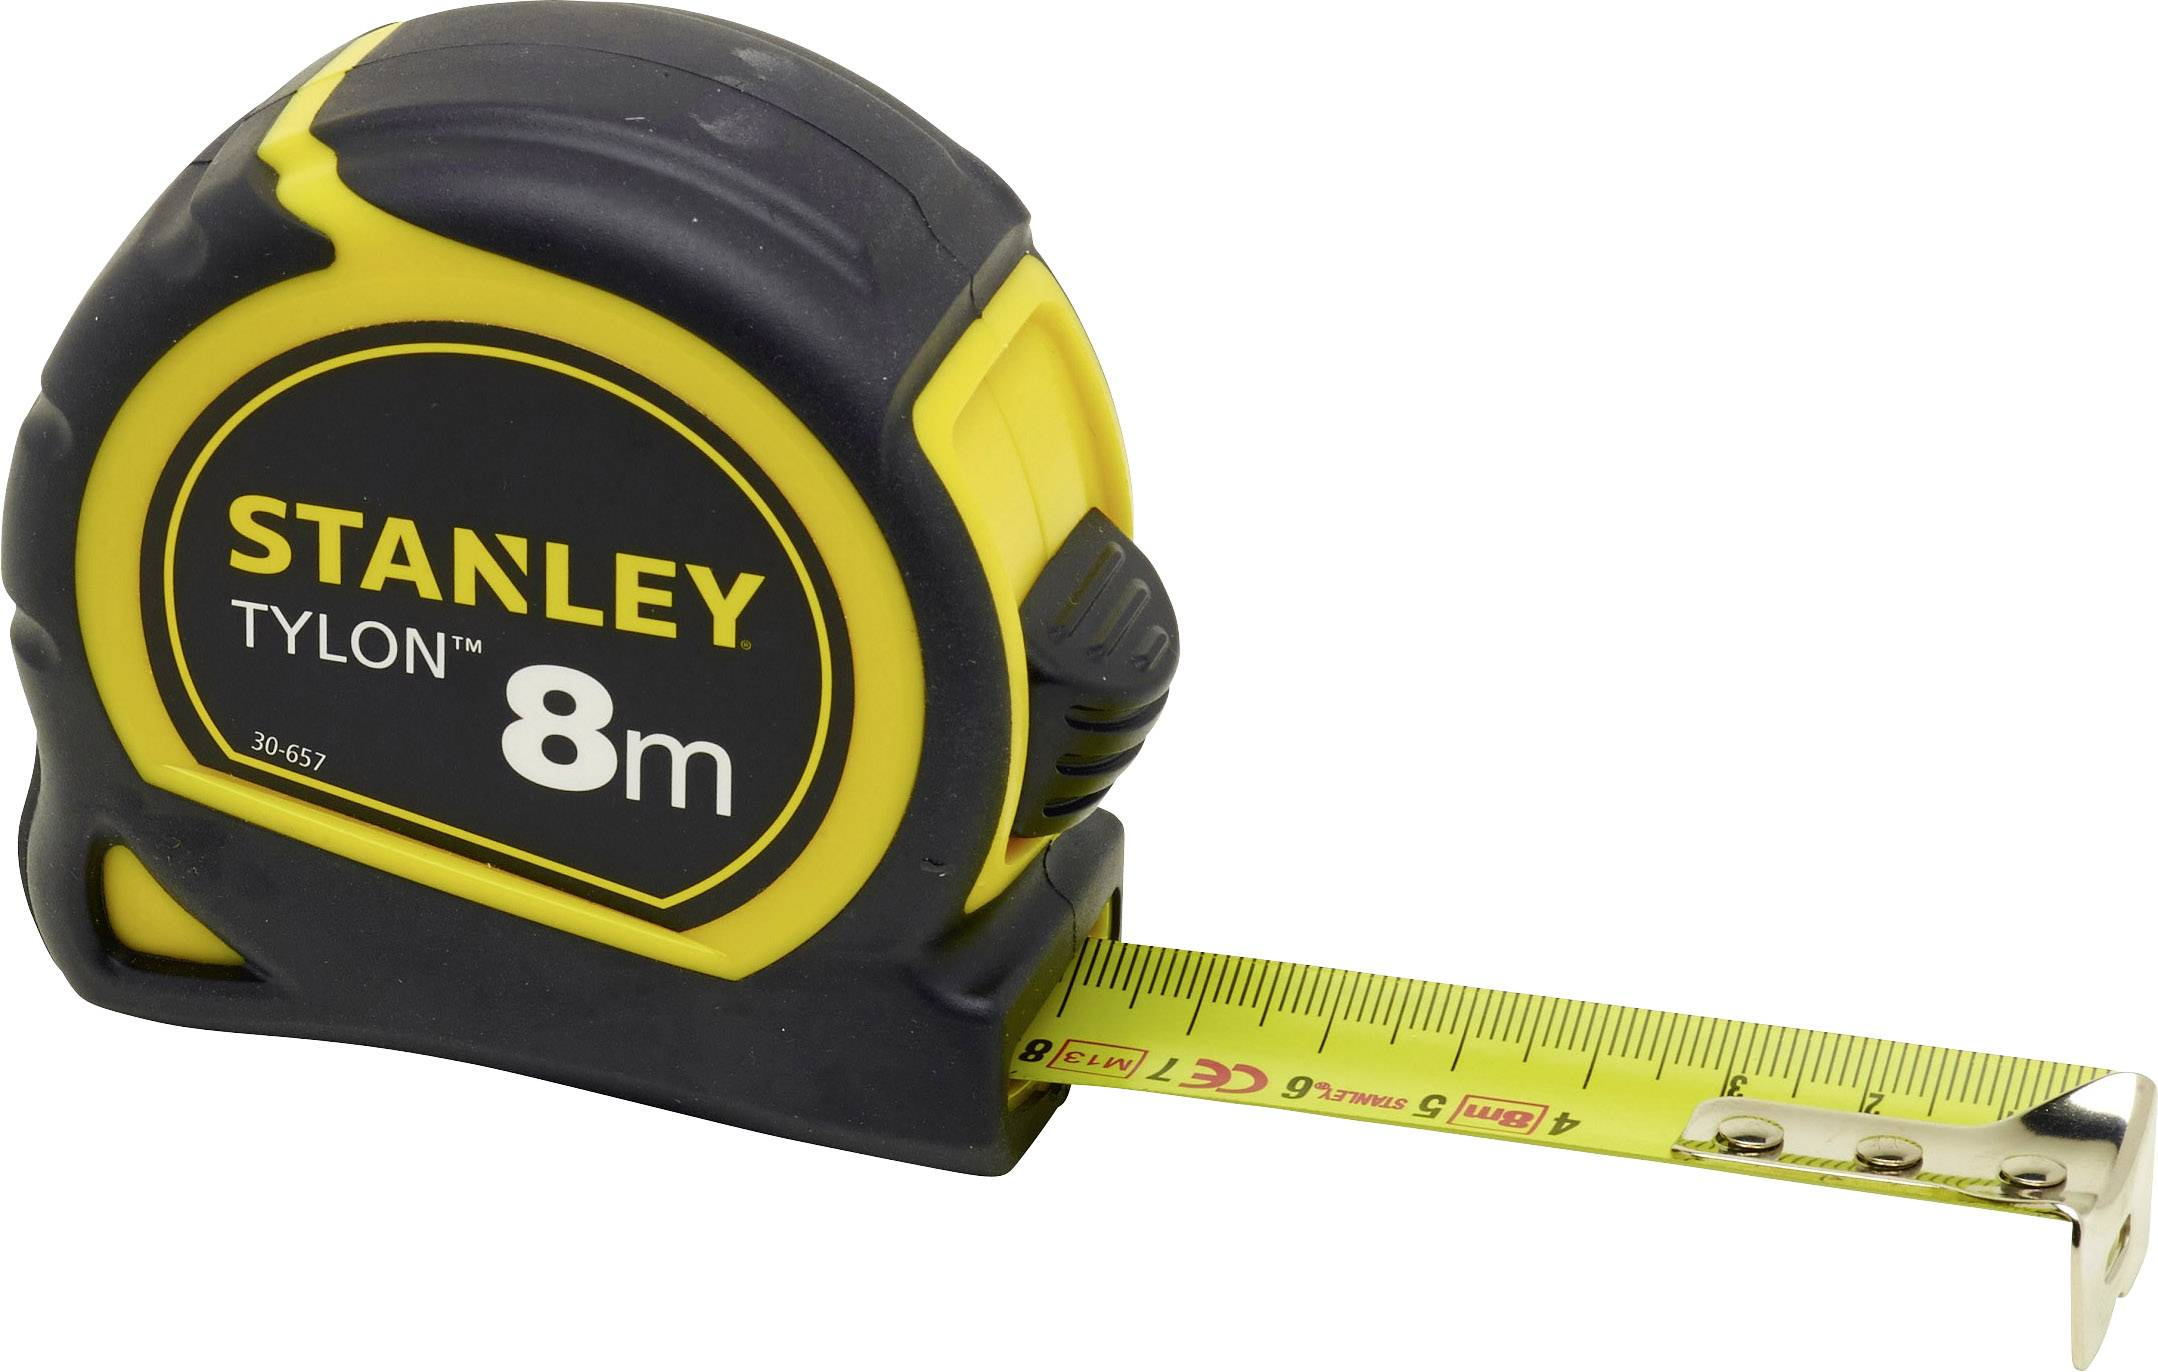 Svinovací metr Stanley by Black & Decker Tylon 8 m 1-30-657